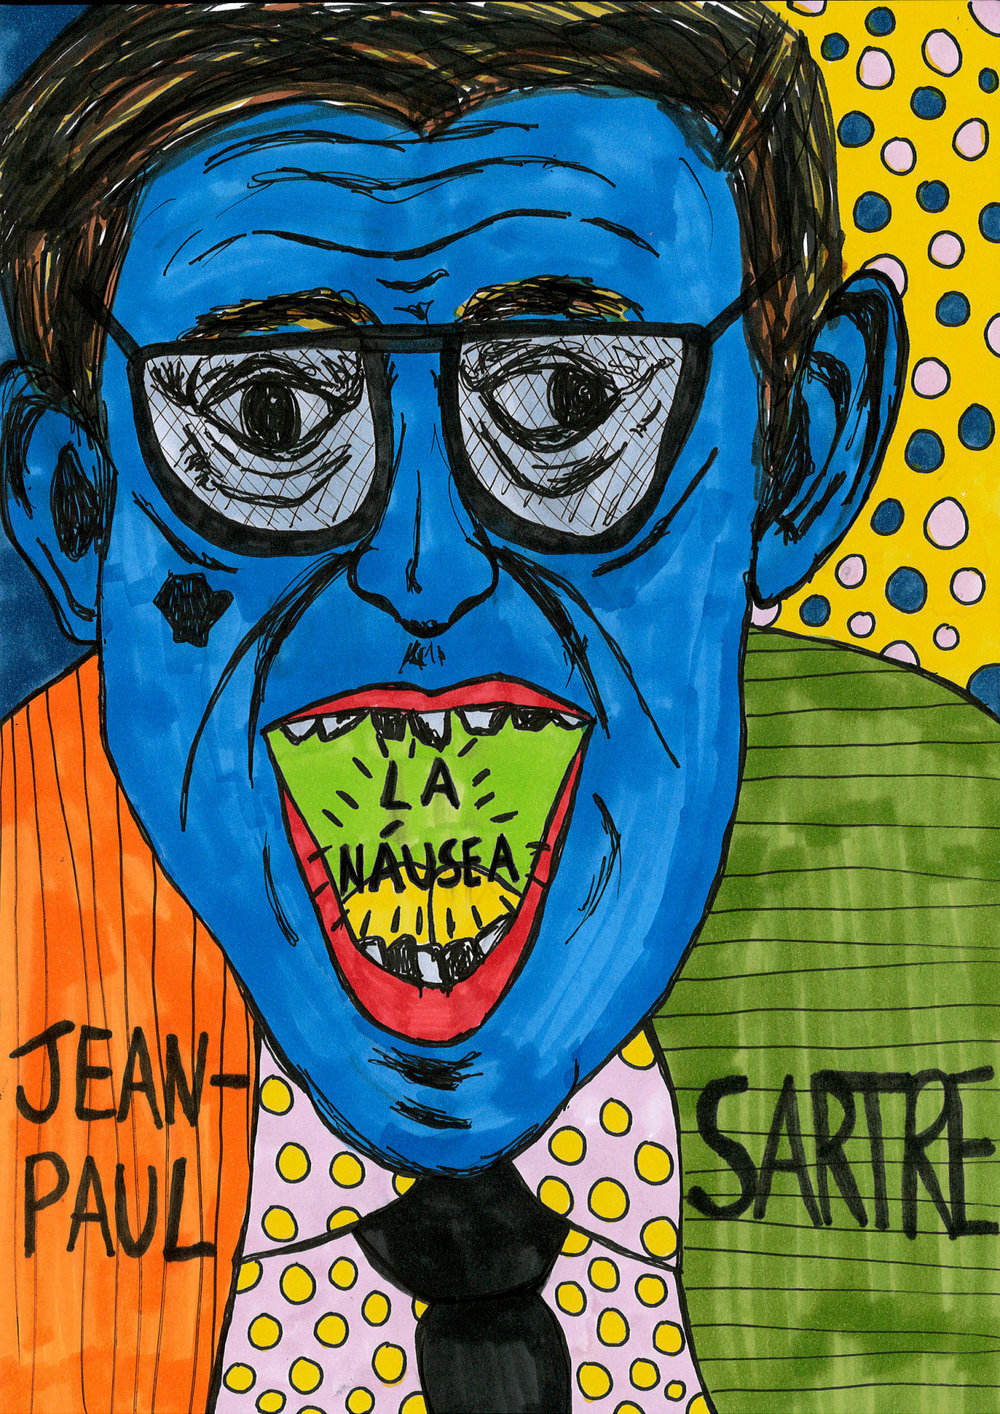 """Jean-Paul Sartre"" , 2013   Marker and pen on paper, 21 x 29.7 cm"